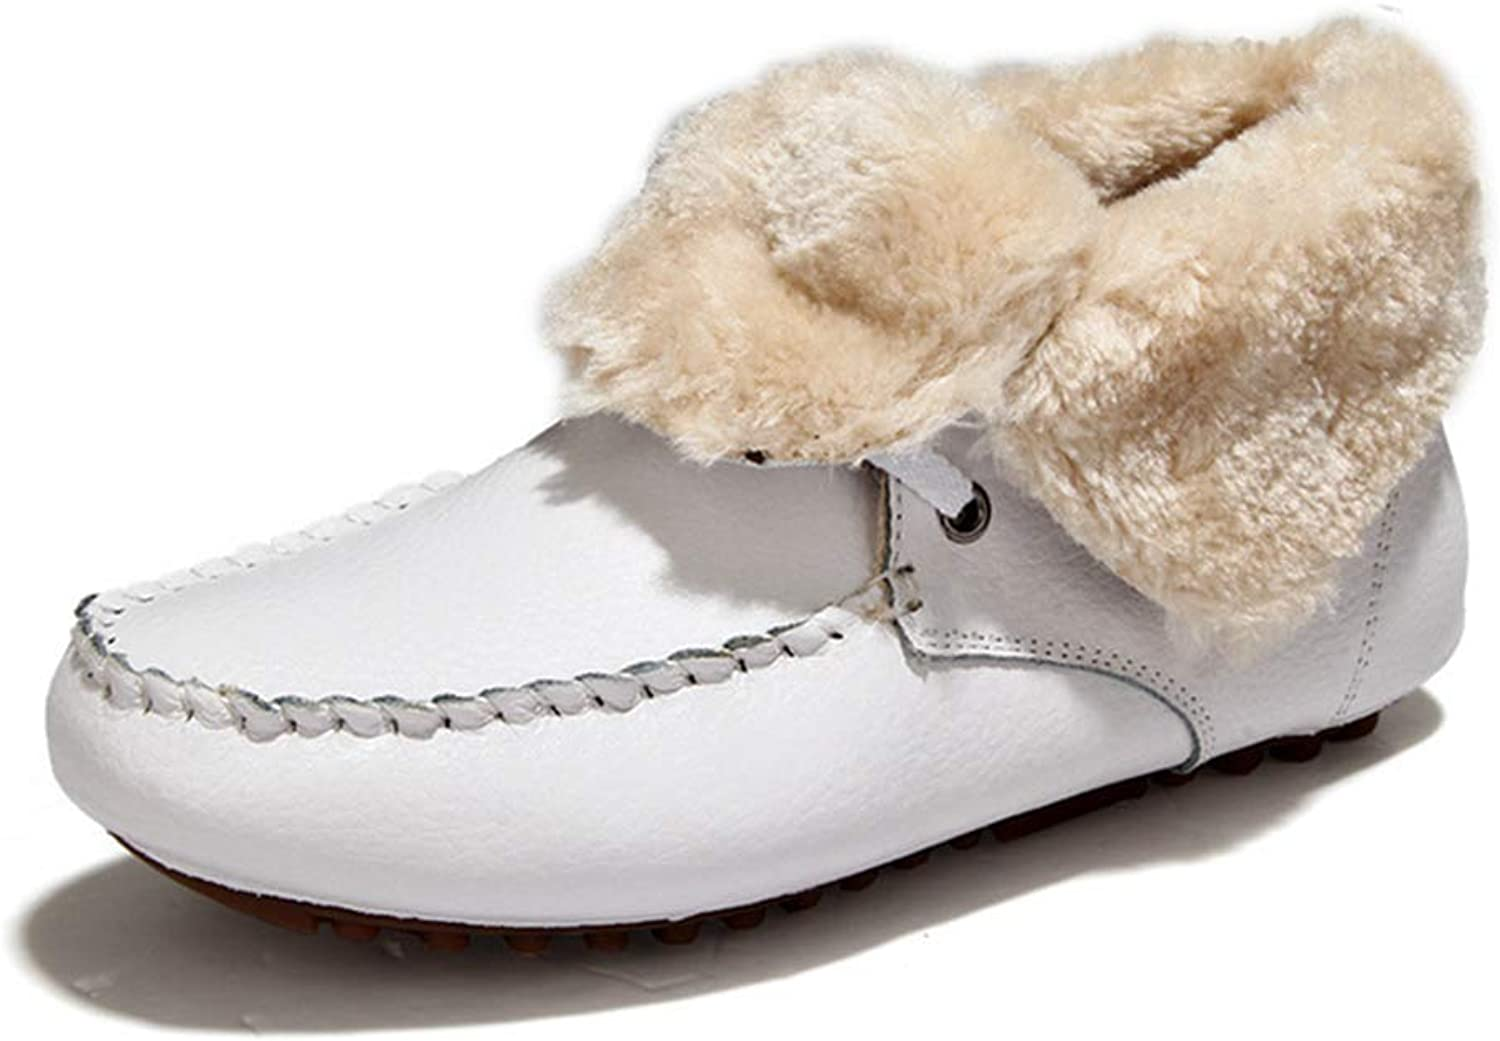 Zarbrina Womens Low Heel Fur Lined Ankle Boots Fashion Winter Short Plush Round Toe Lace Up Slip On Fleece Warm Snow shoes